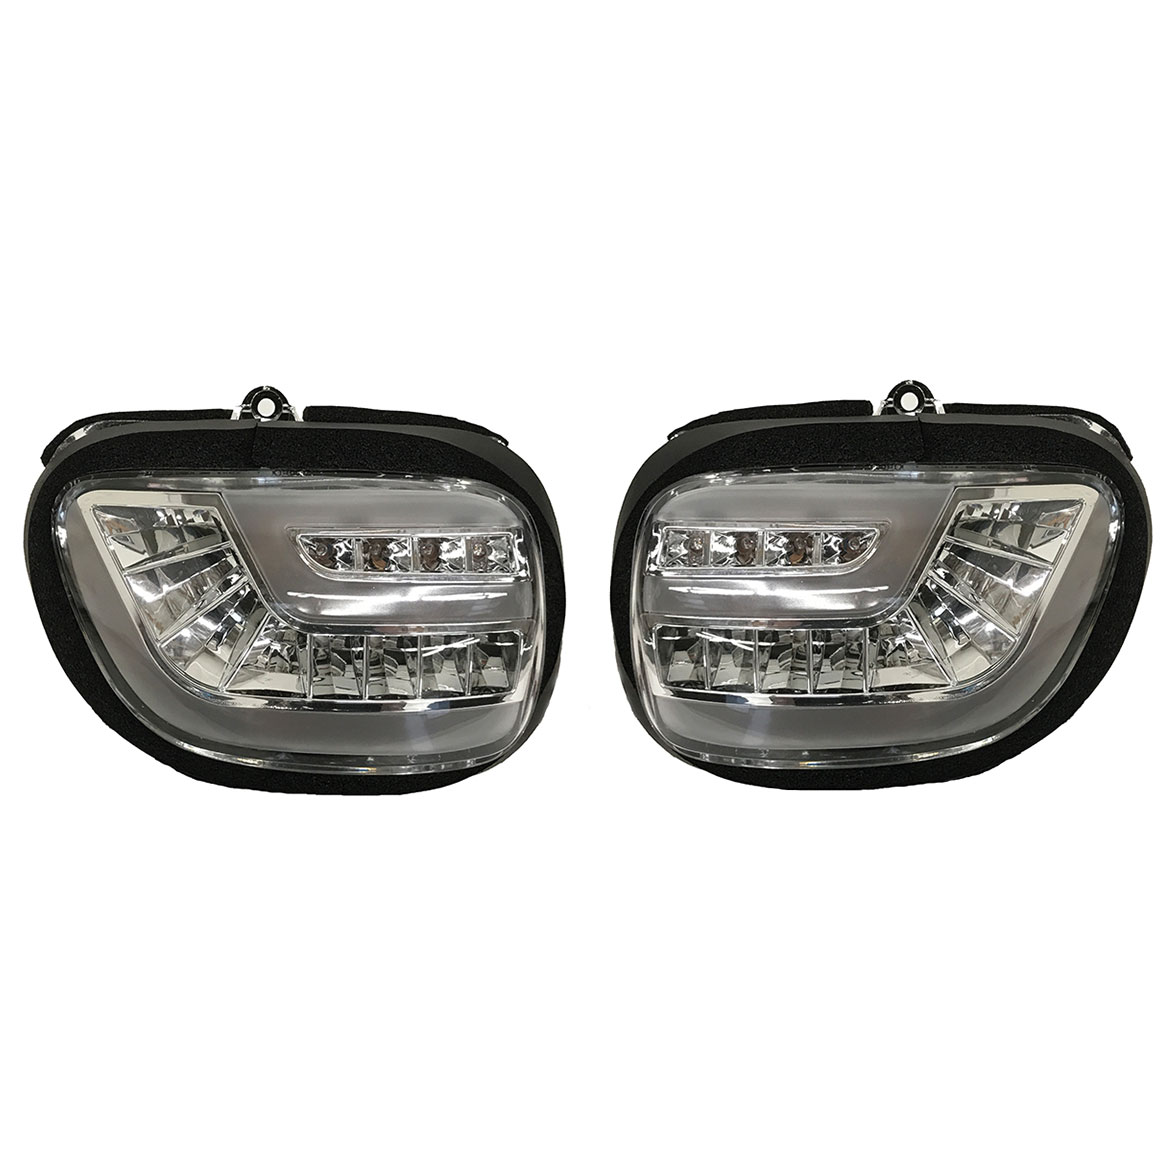 PathfinderLED Dynamic Sequential Clear LED Front Signals with Daytime  Running Lights - G18DTC